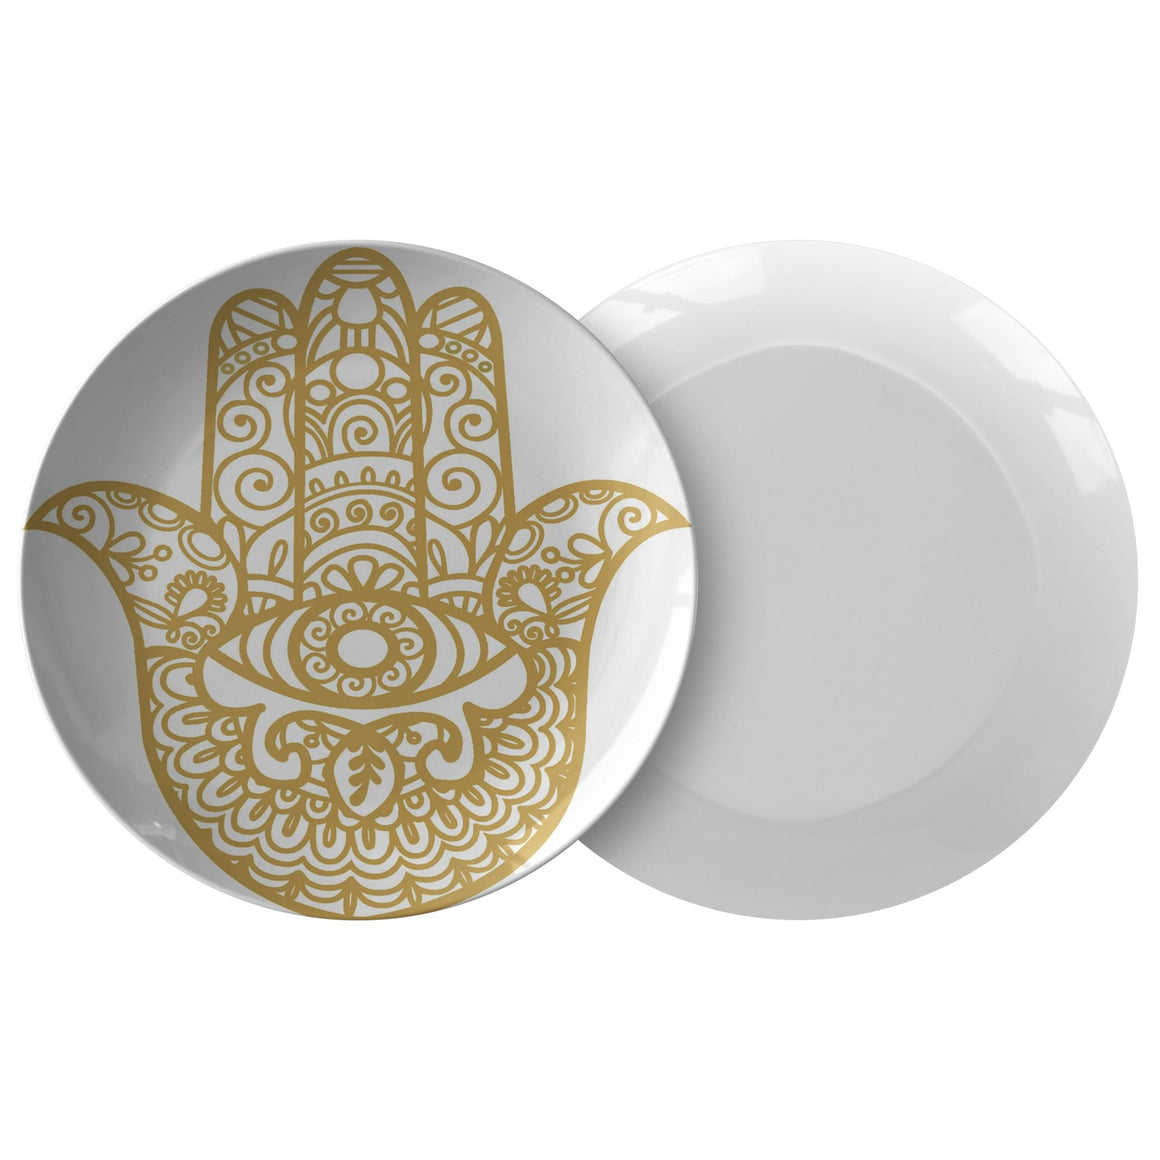 Gold Hamsa Plates Good Luck Dinnerware Dinnerware Single Plate